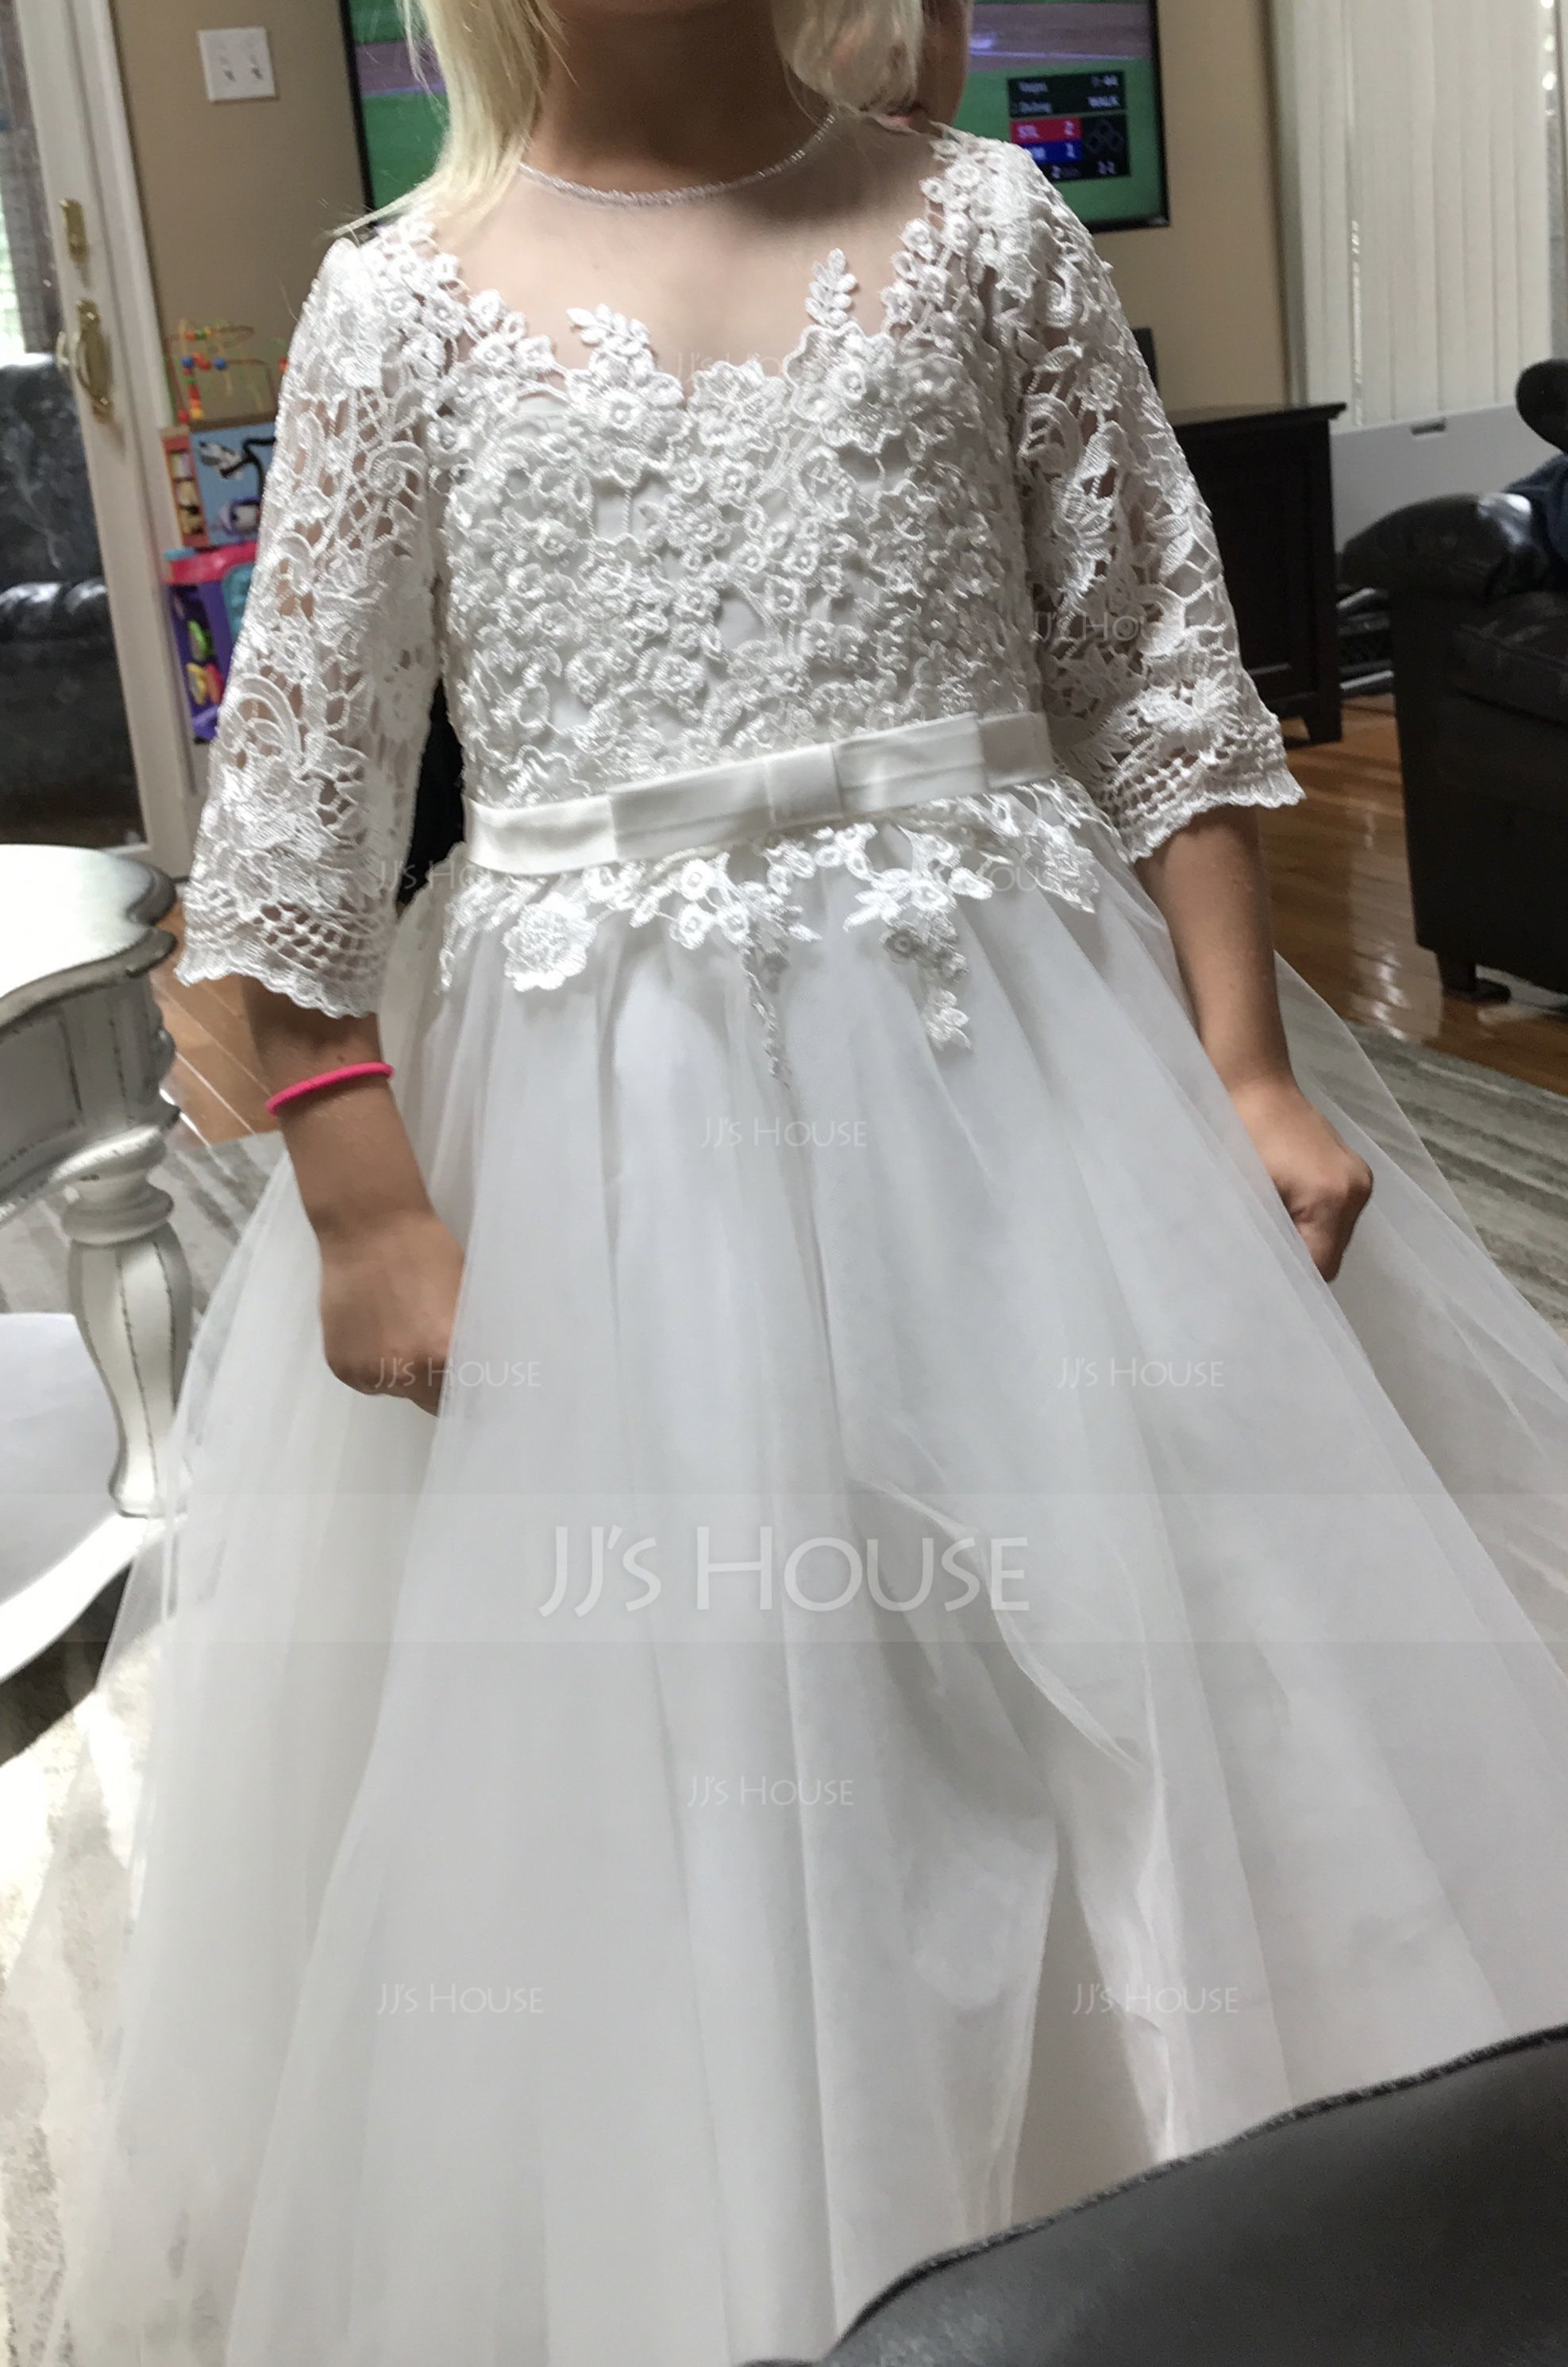 A-Line/Princess Tea-length Flower Girl Dress - Tulle/Lace 3/4 Sleeves Scoop Neck With Bow(s) (010169227)